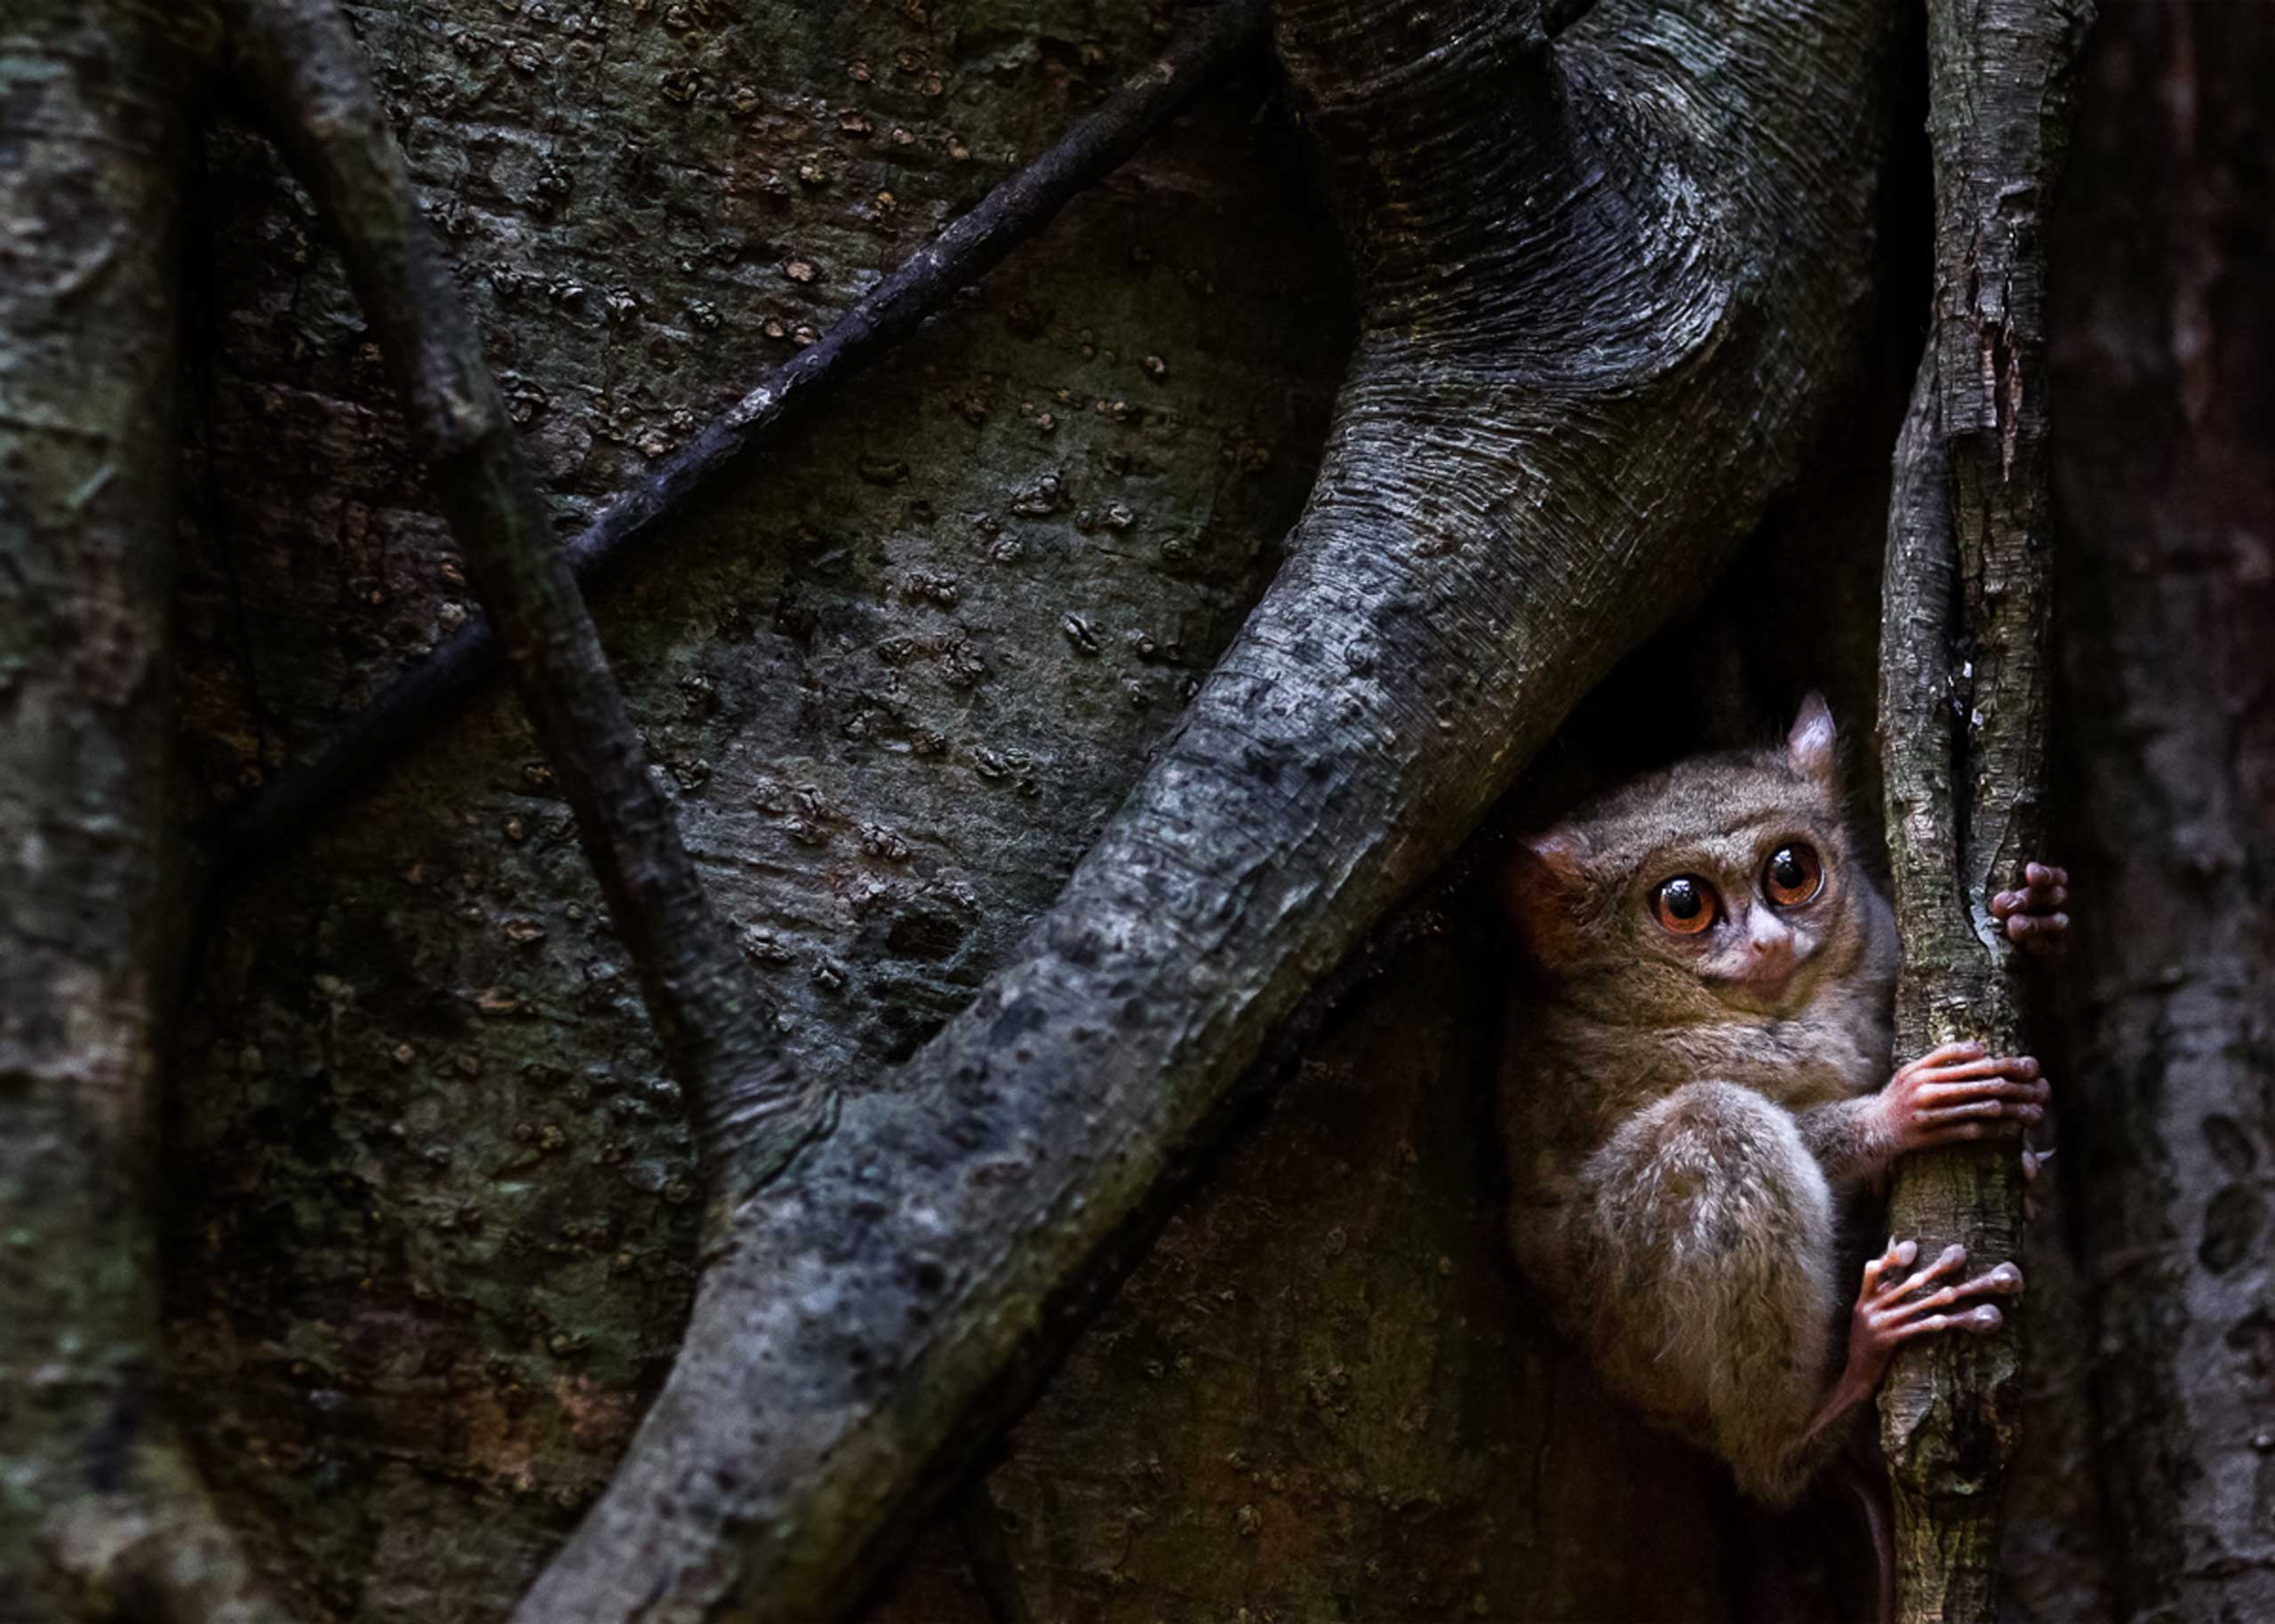 A tarsier in its natural habitat in Sulawesi, Indonesia.